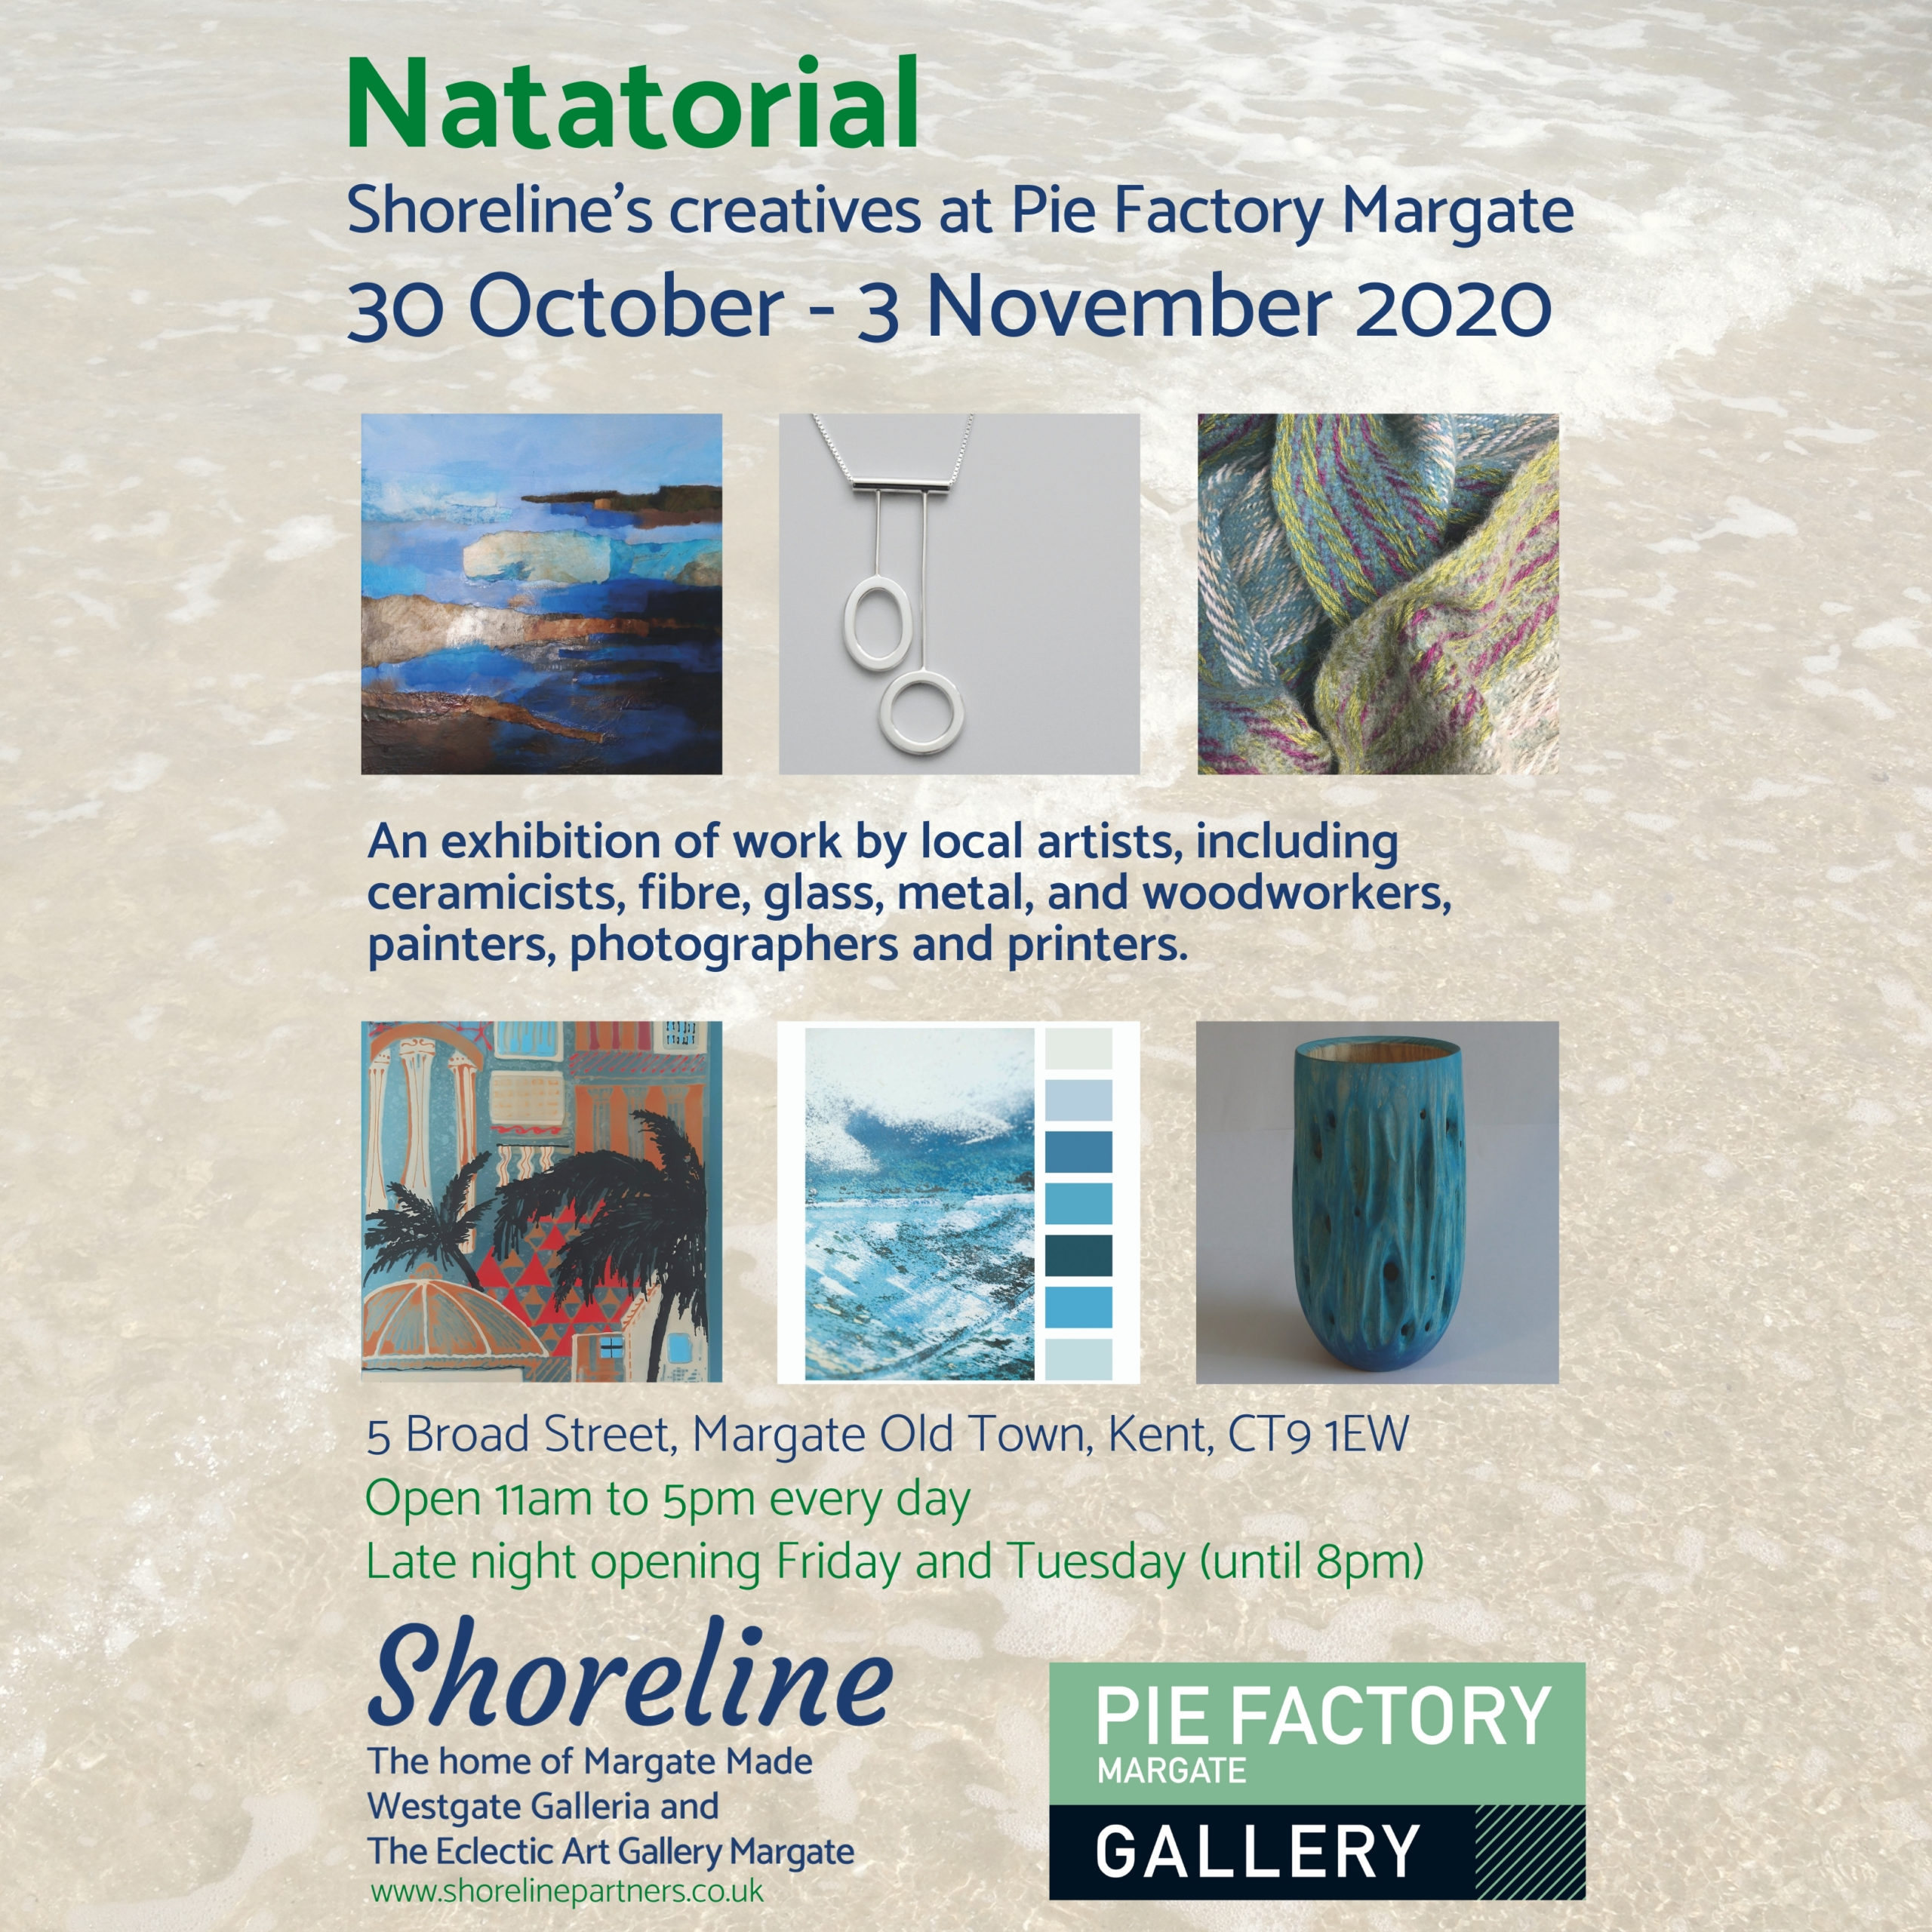 Natatorial at Pie Factory Margate